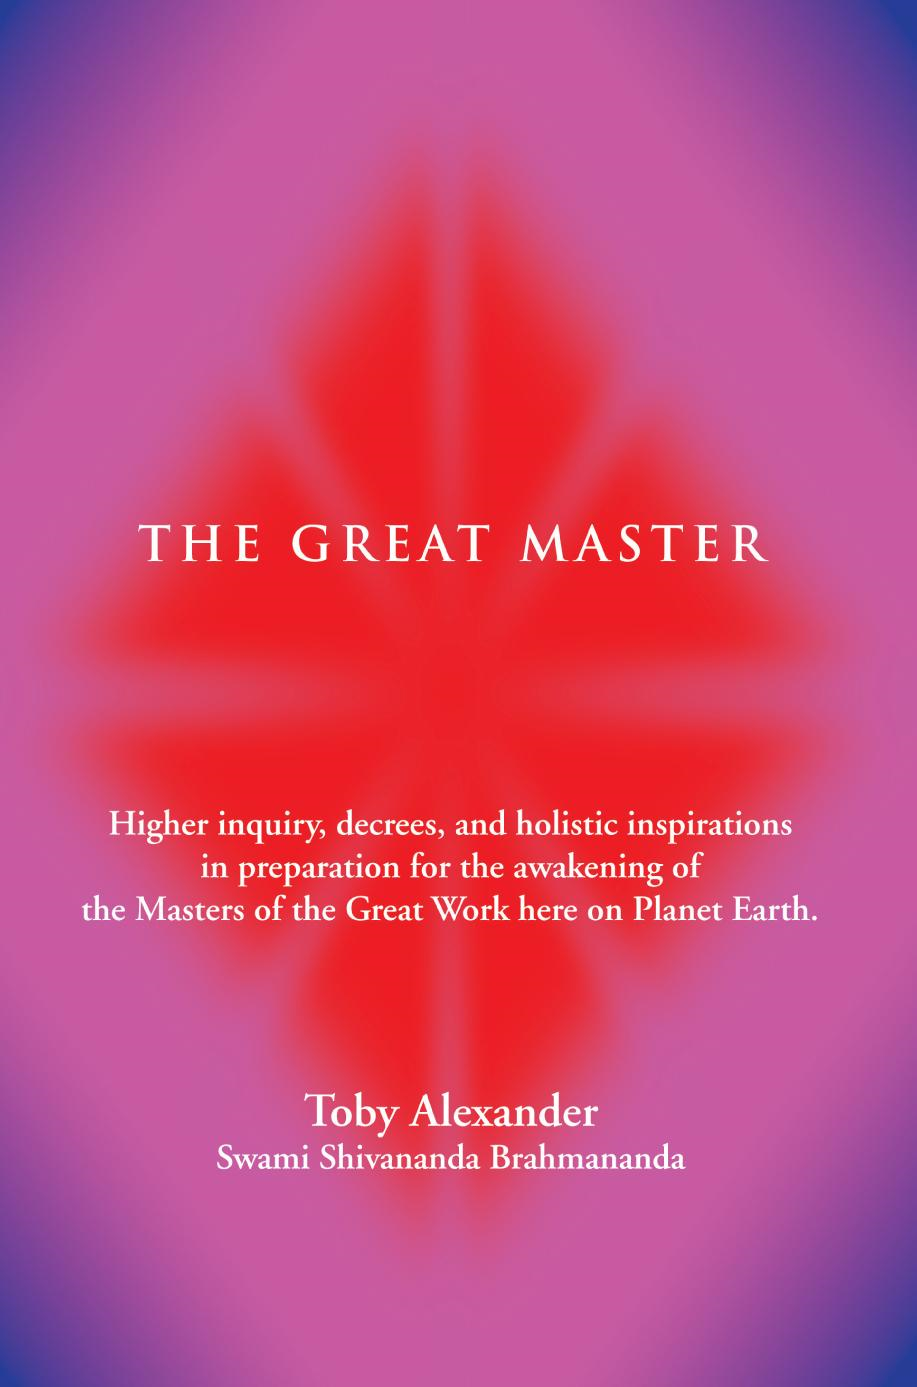 Toby Alexander - THE GREAT MASTER: Higher inquiry, decrees, and holistic inspirations in preparation for the awakening of the Masters of the Great Work here on Planet